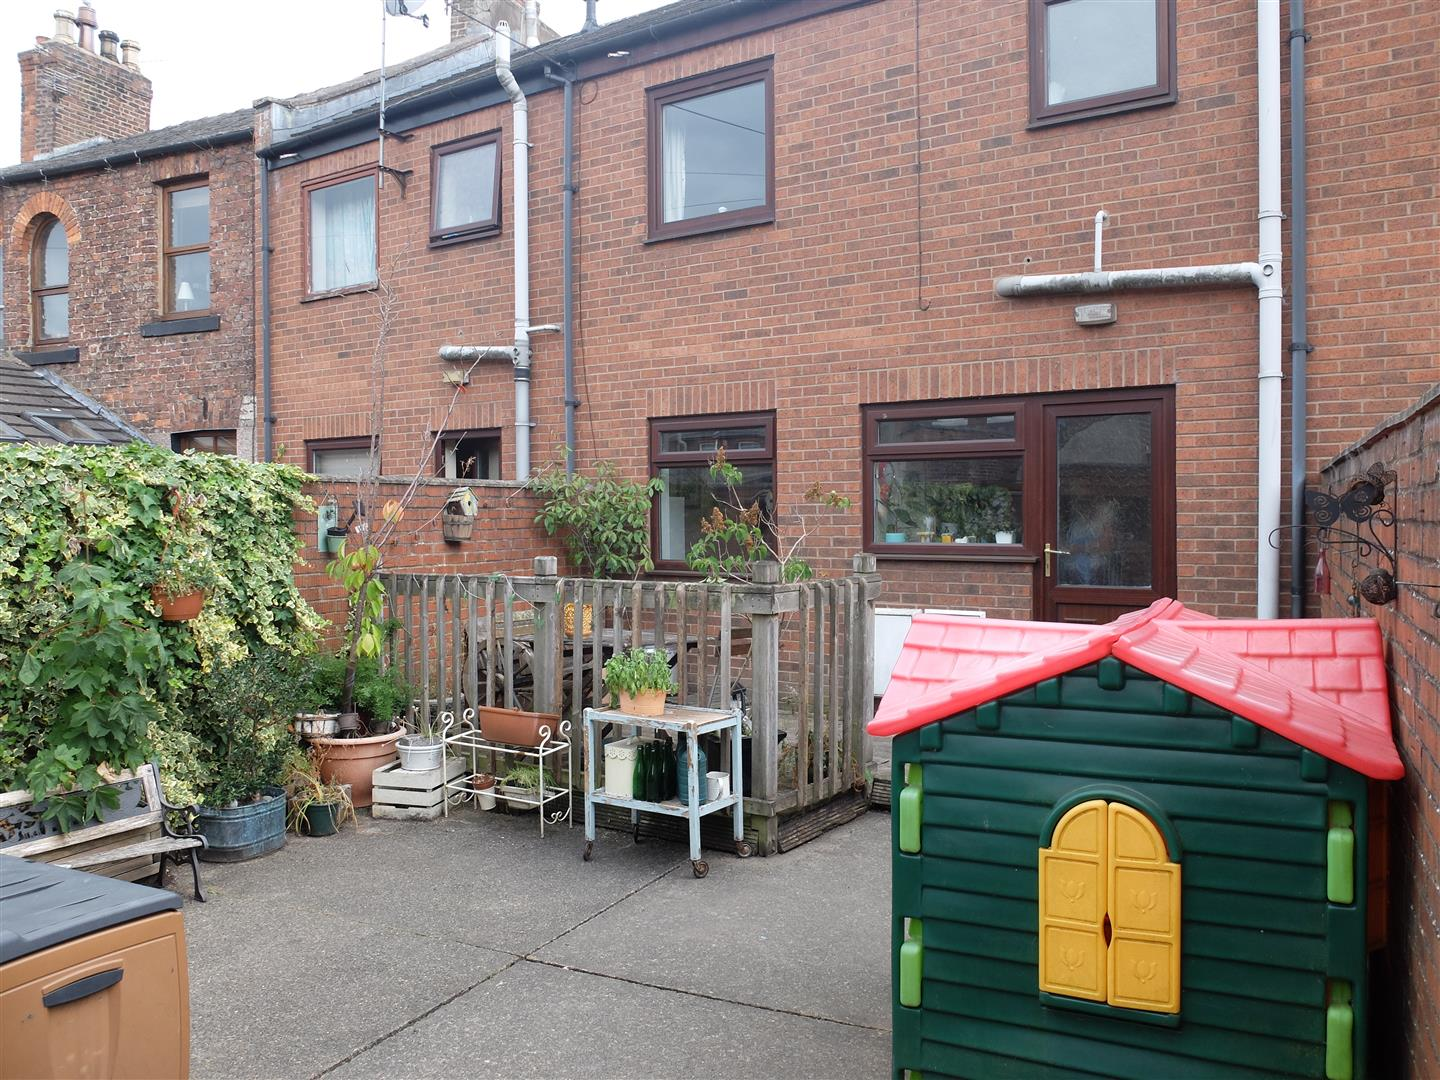 2 Bedrooms House - Terraced On Sale 22 Wigton Road Carlisle 100,000